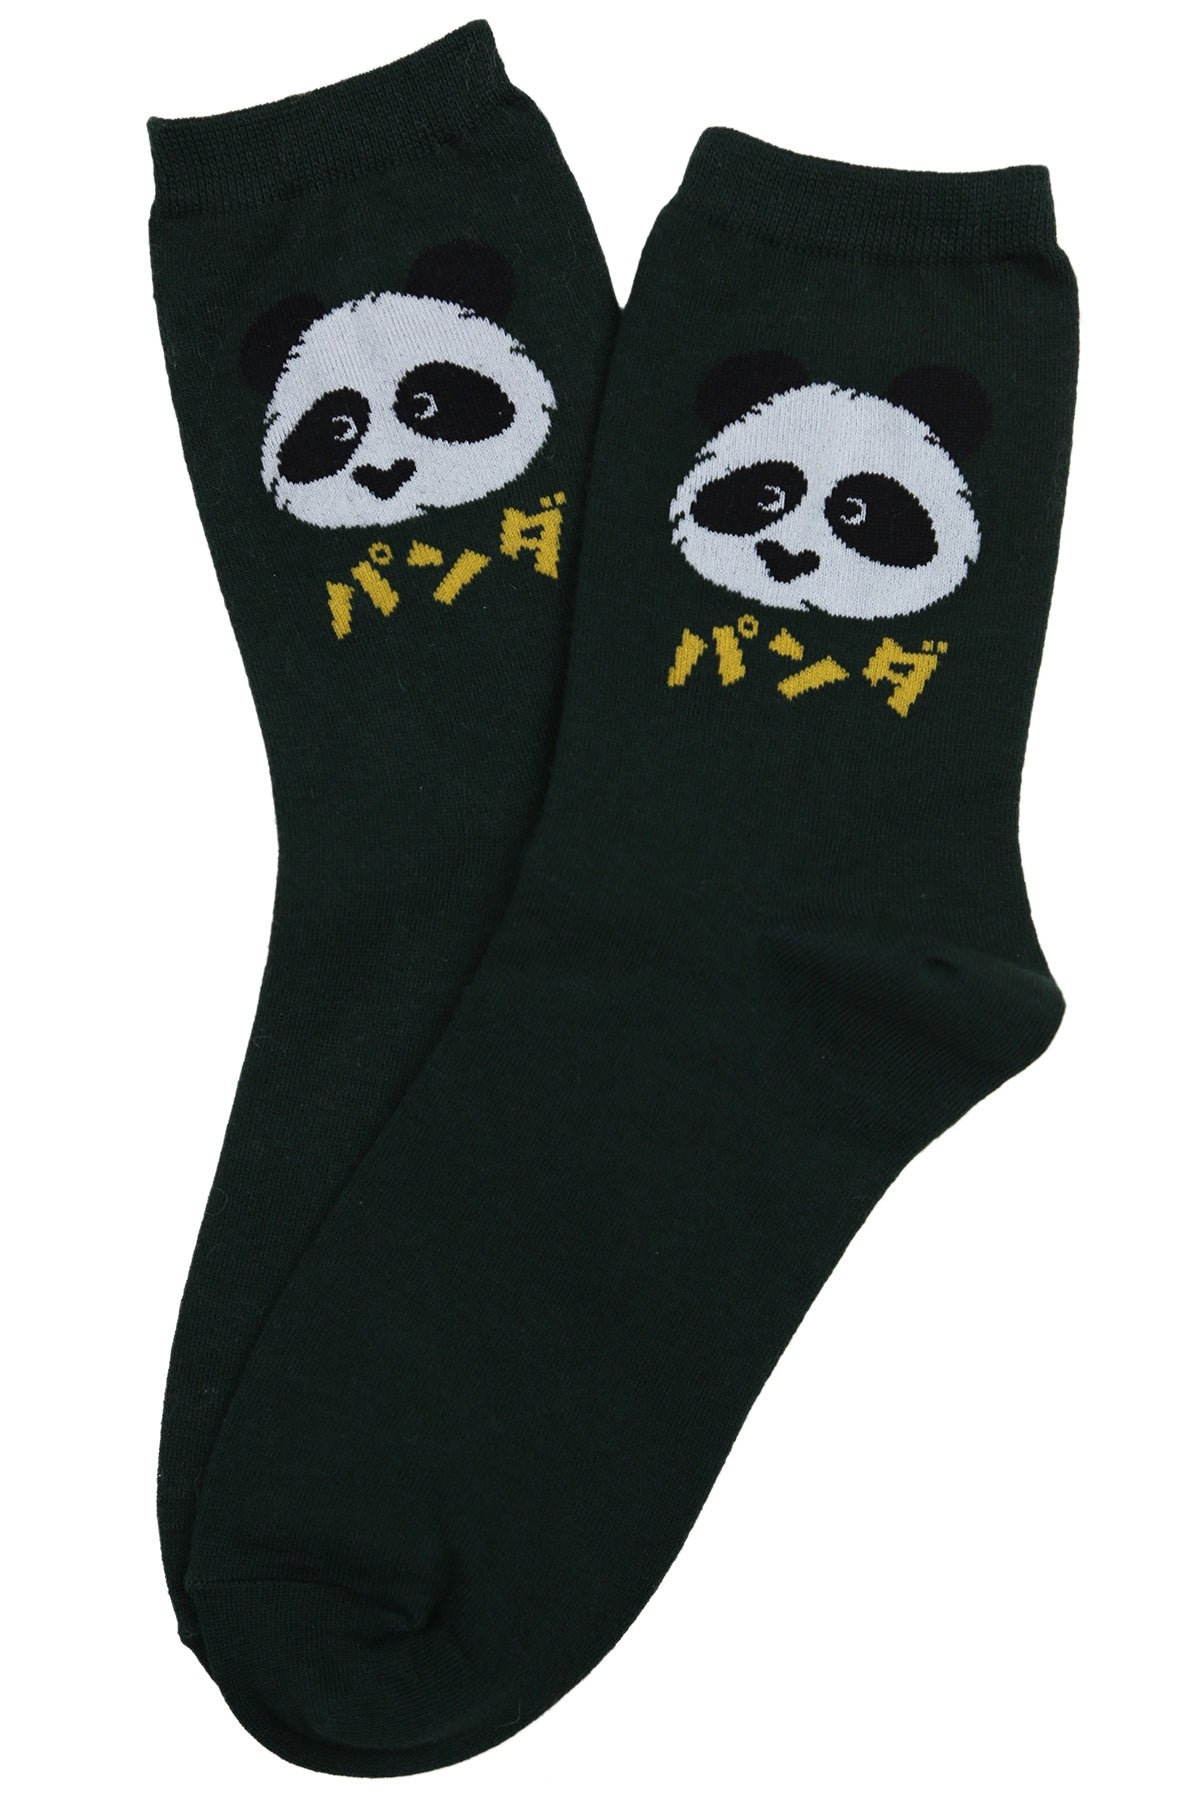 Kuma Cotton Socks Panda Green